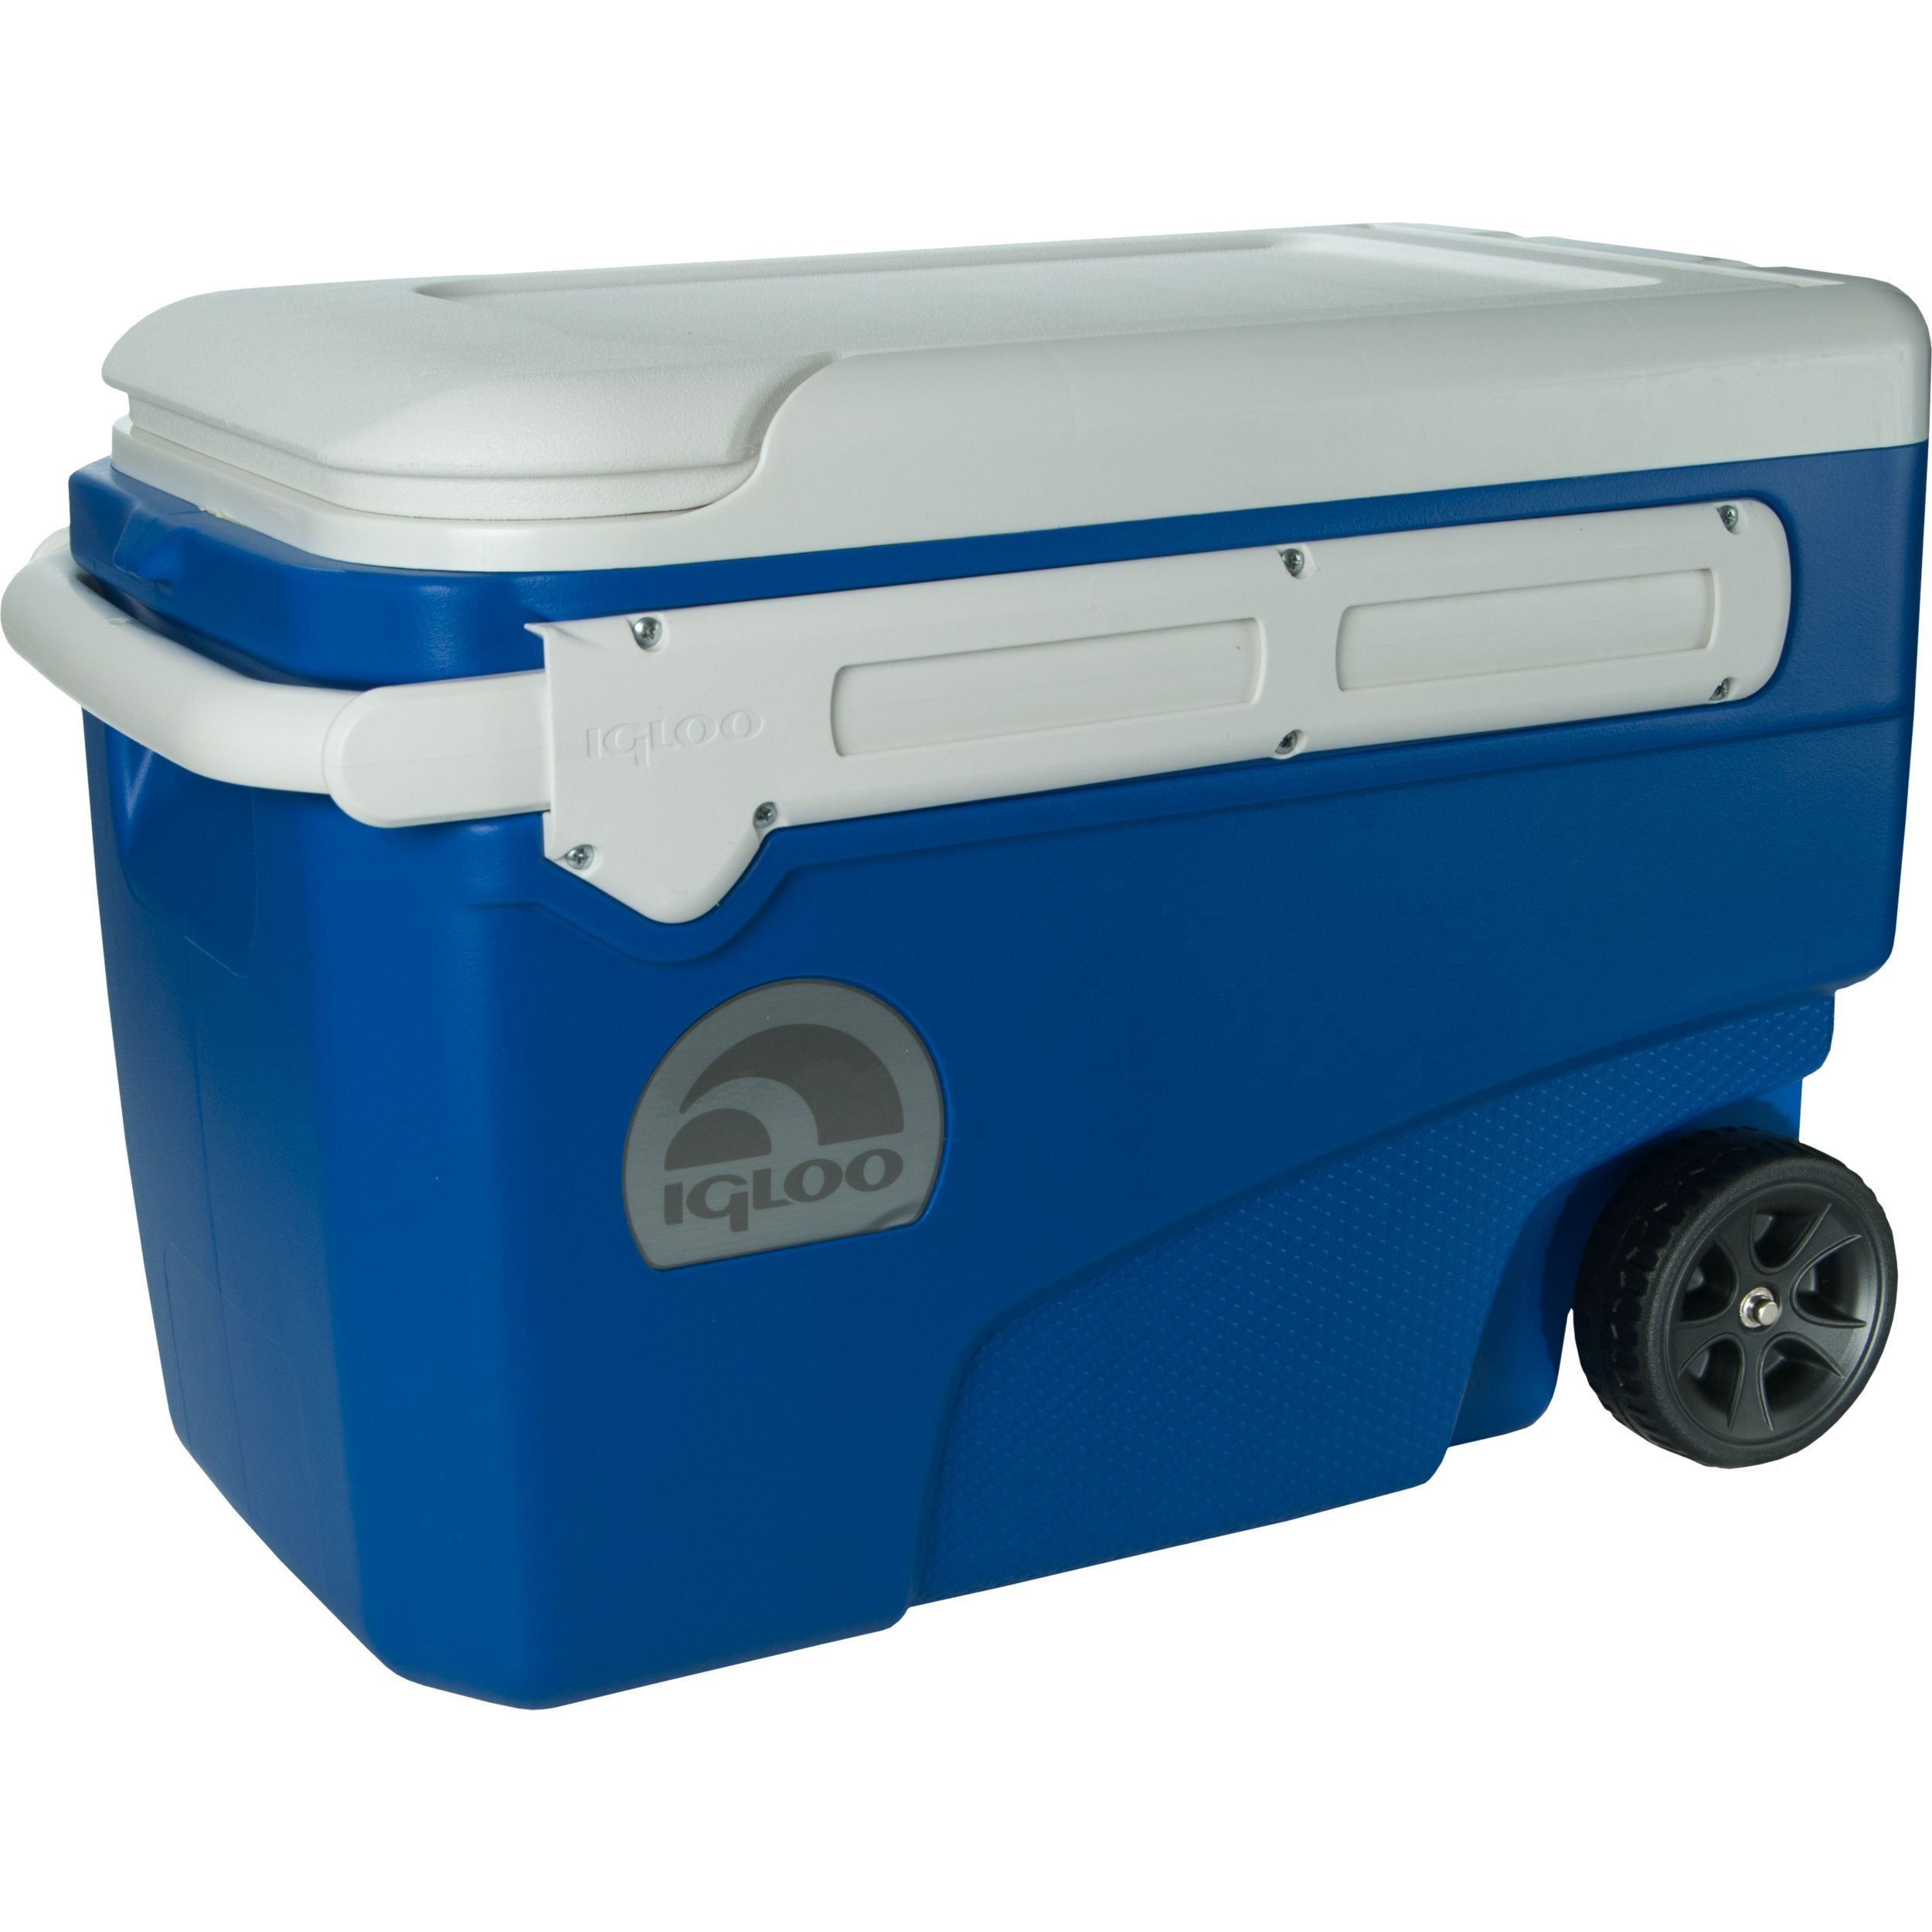 Igloo 45756 38-quart Contour Glide Cooler Blue (Blue) (Oak)